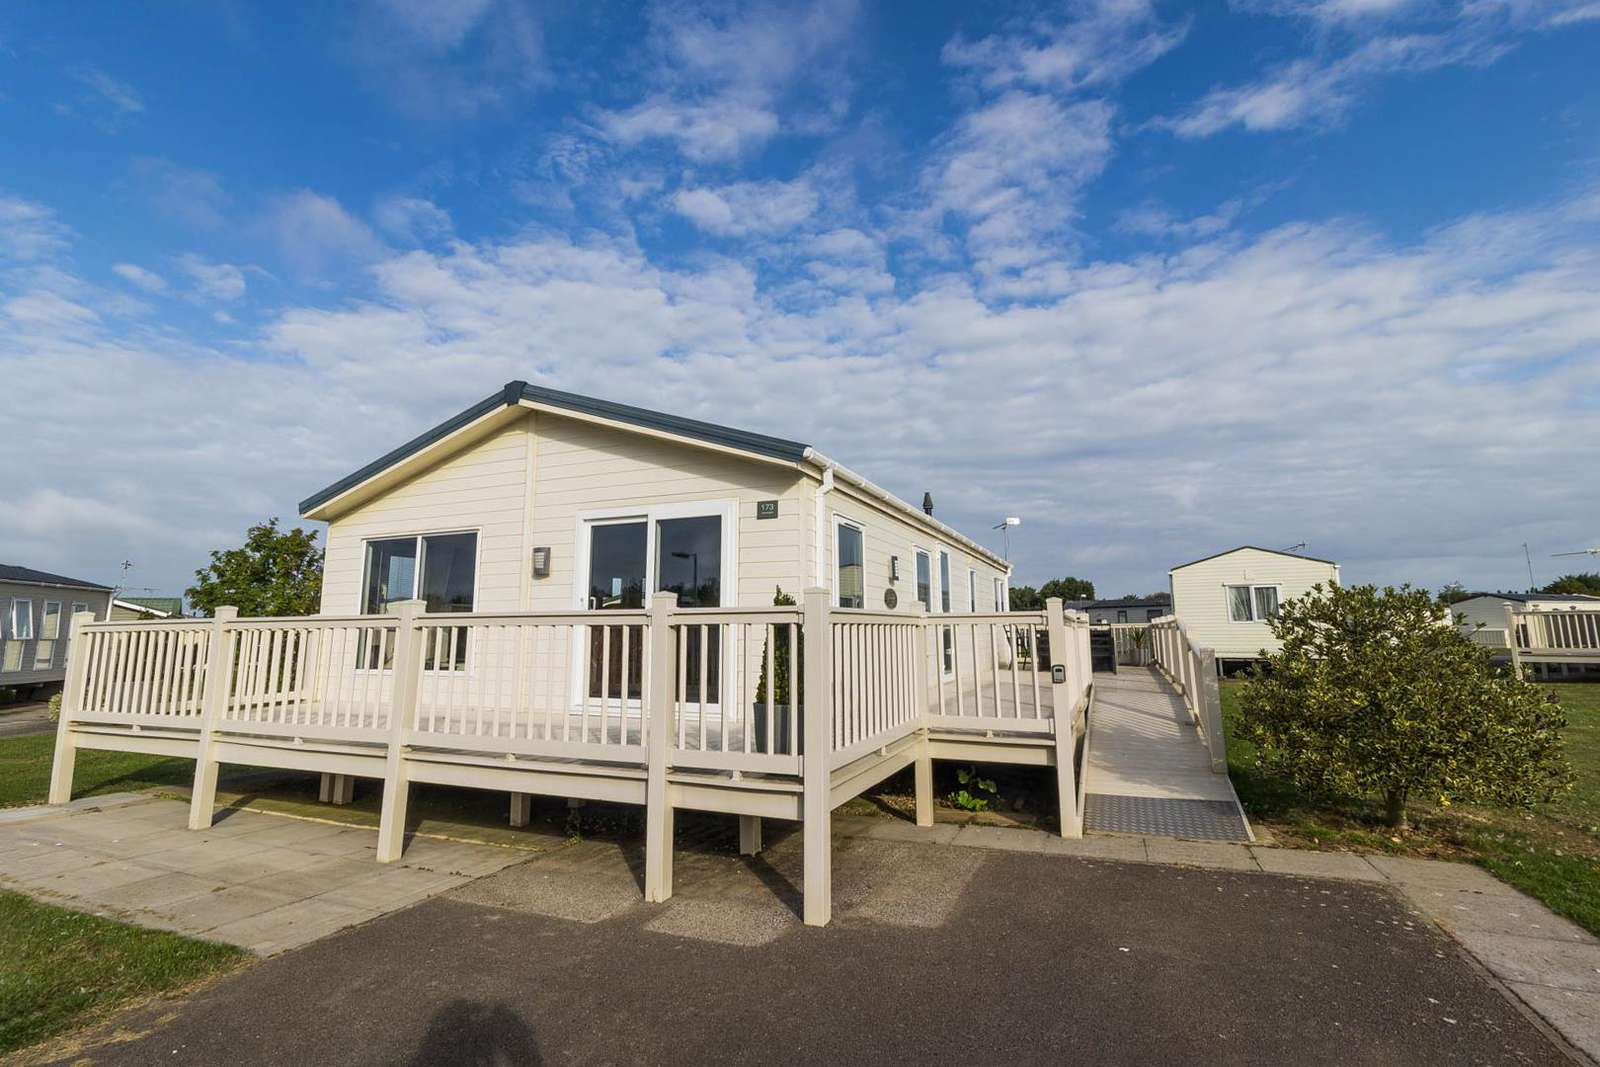 23173K – Kensington area, 2 bed, 4 berth lodge with decking. Platinum-Deluxe rated. - property